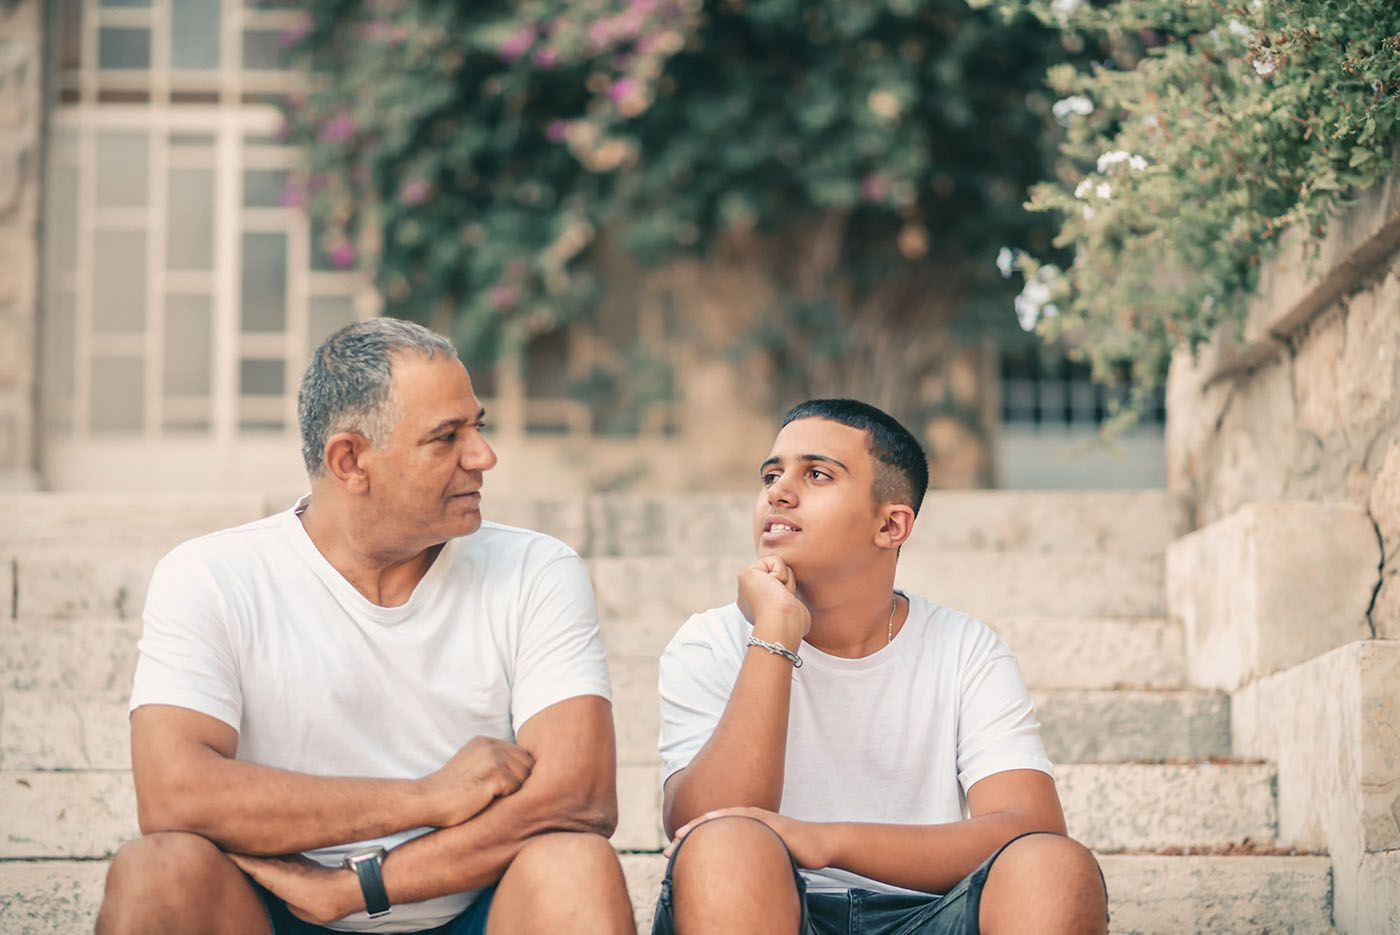 teen son talking with dad